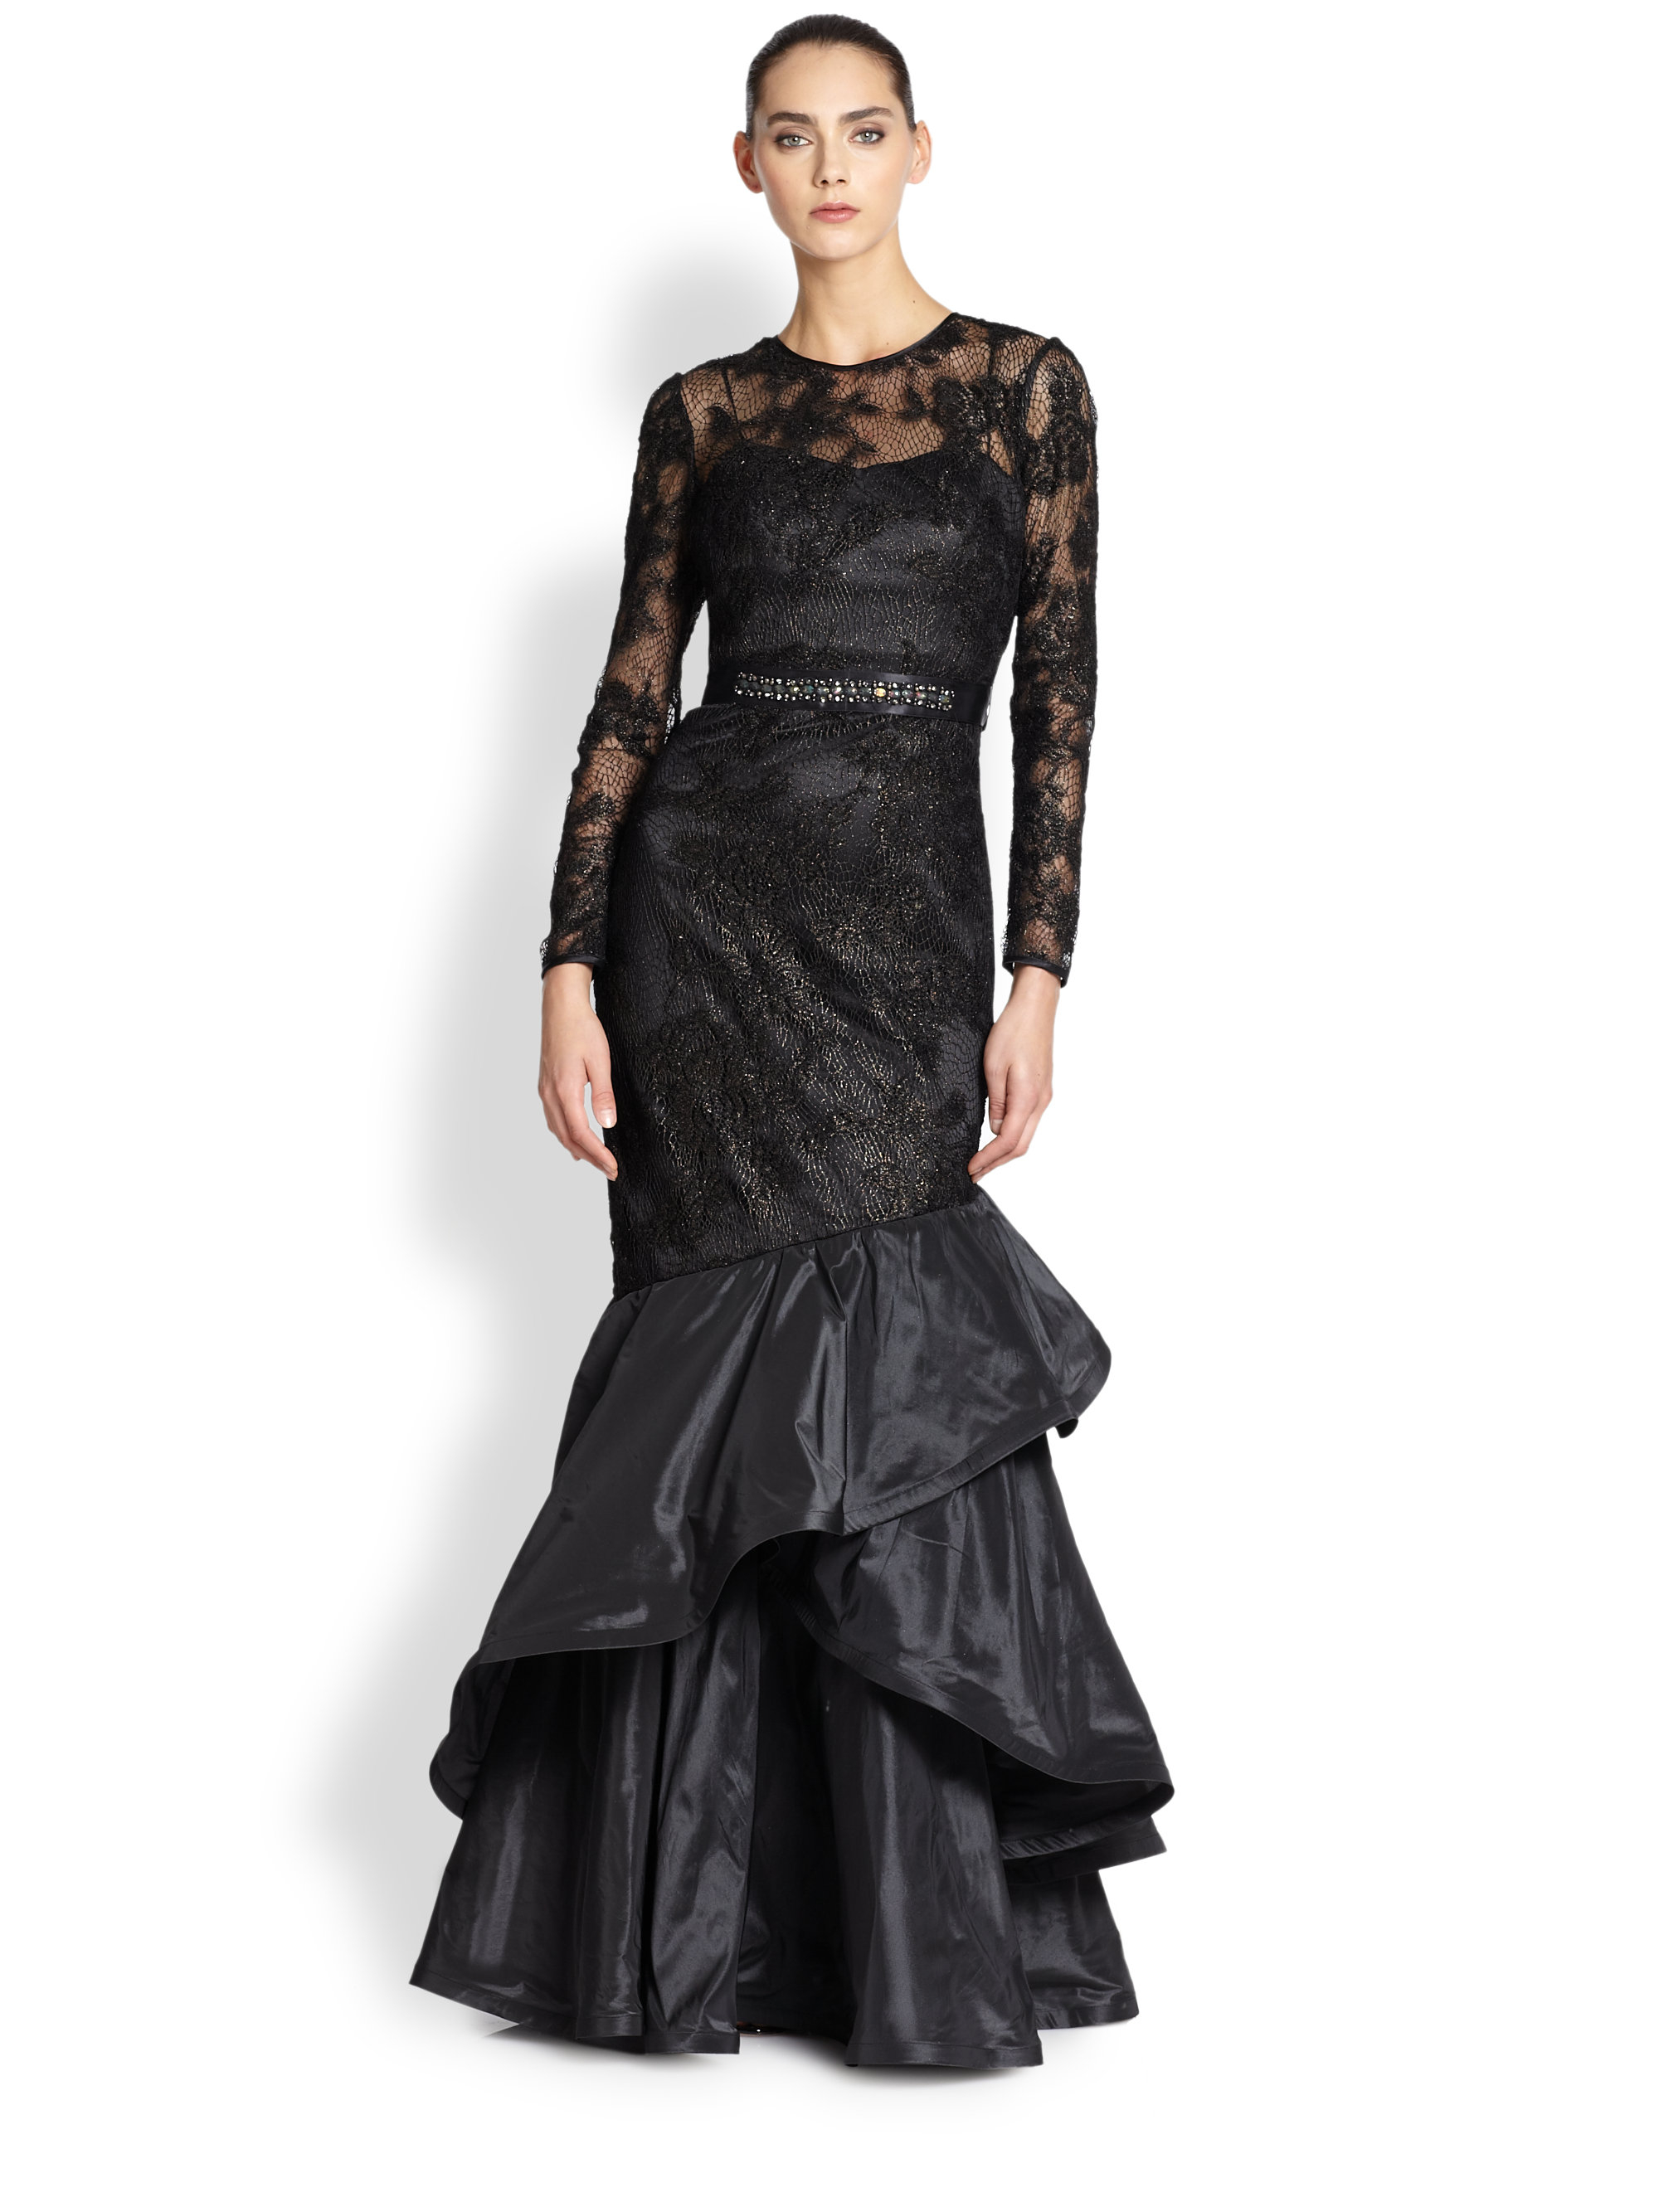 Lyst - Teri Jon Lace & Taffeta Mermaid Gown in Black